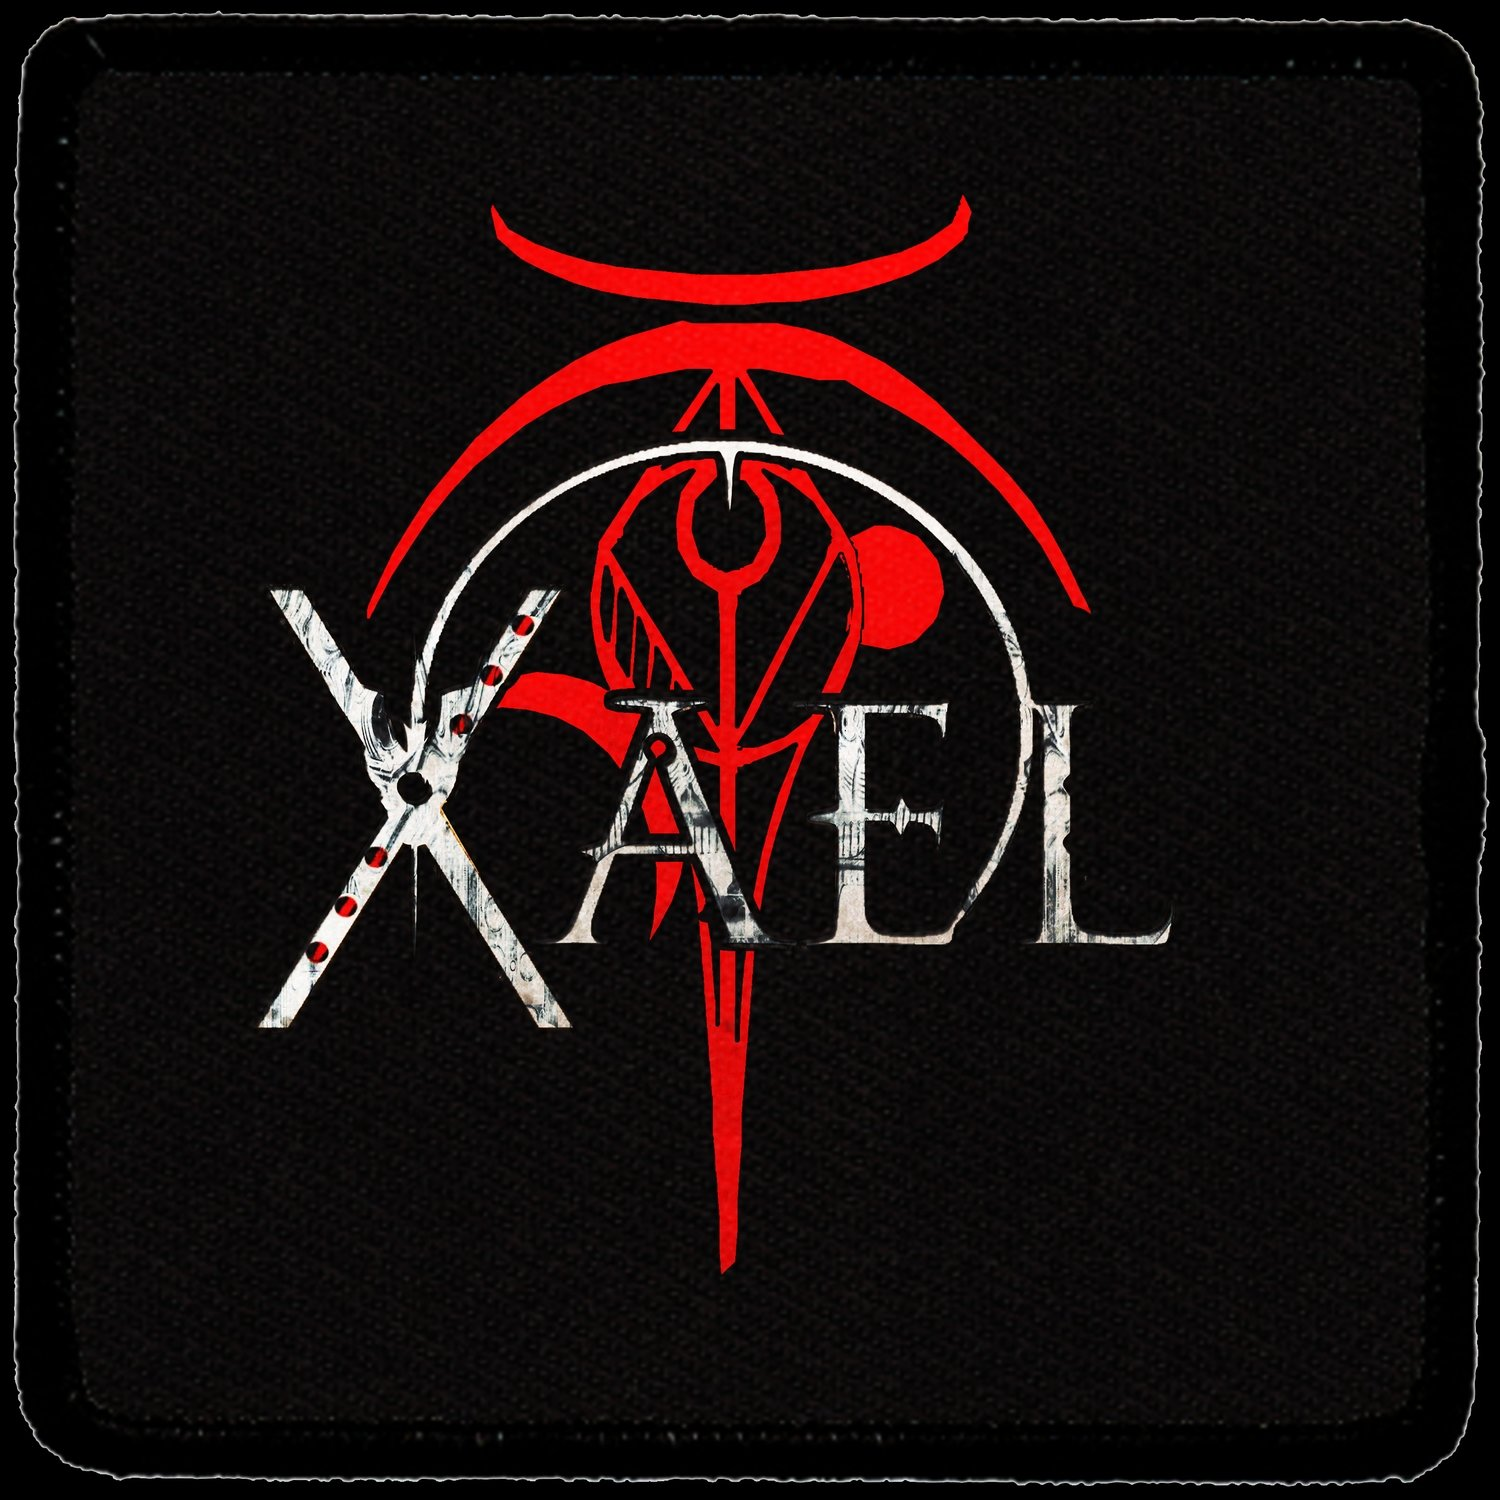 Xael 3x3 patch